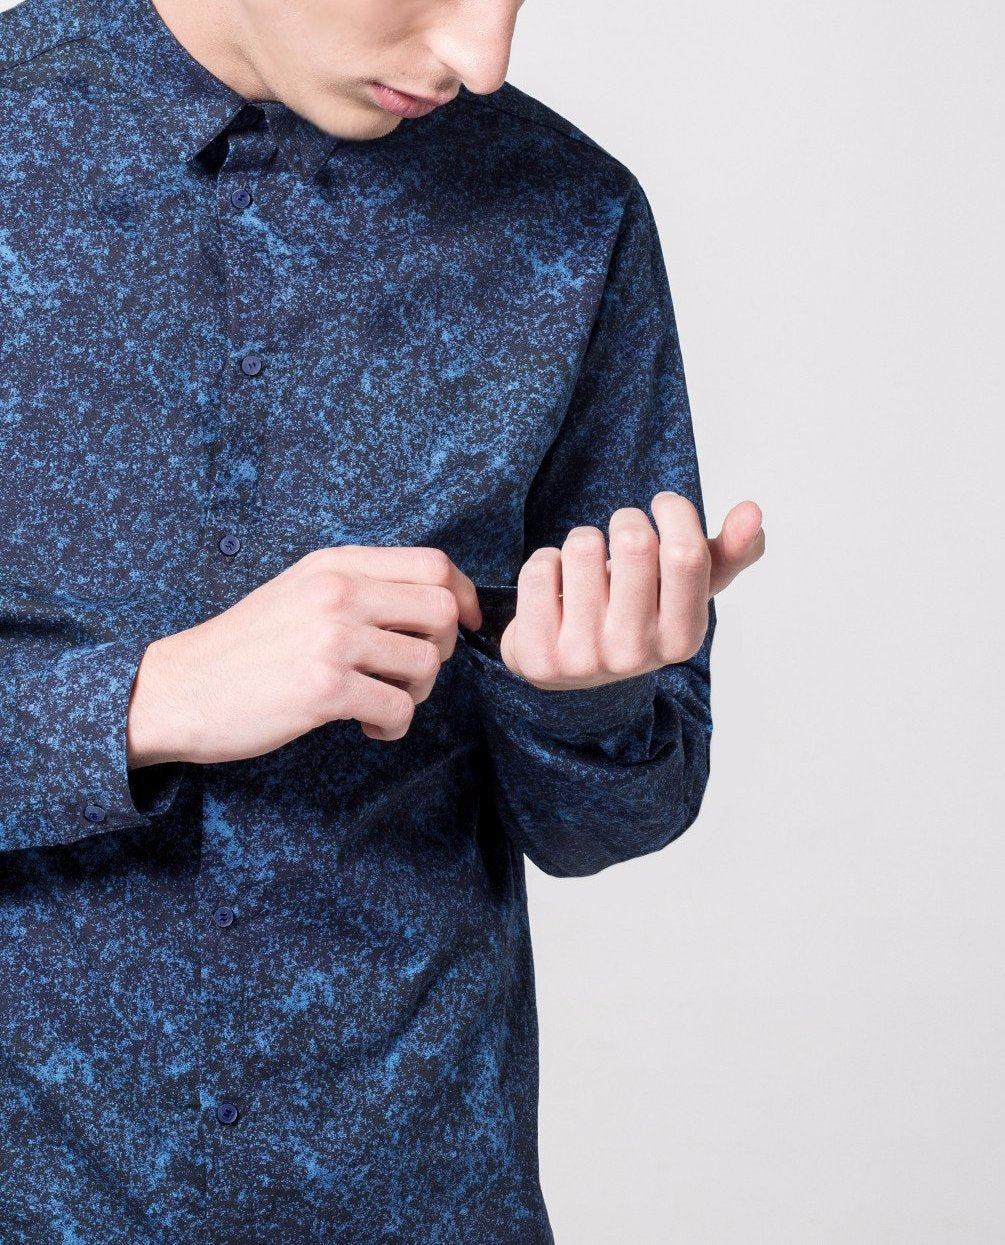 Texture Print Shirt - Local Pattern  - 1